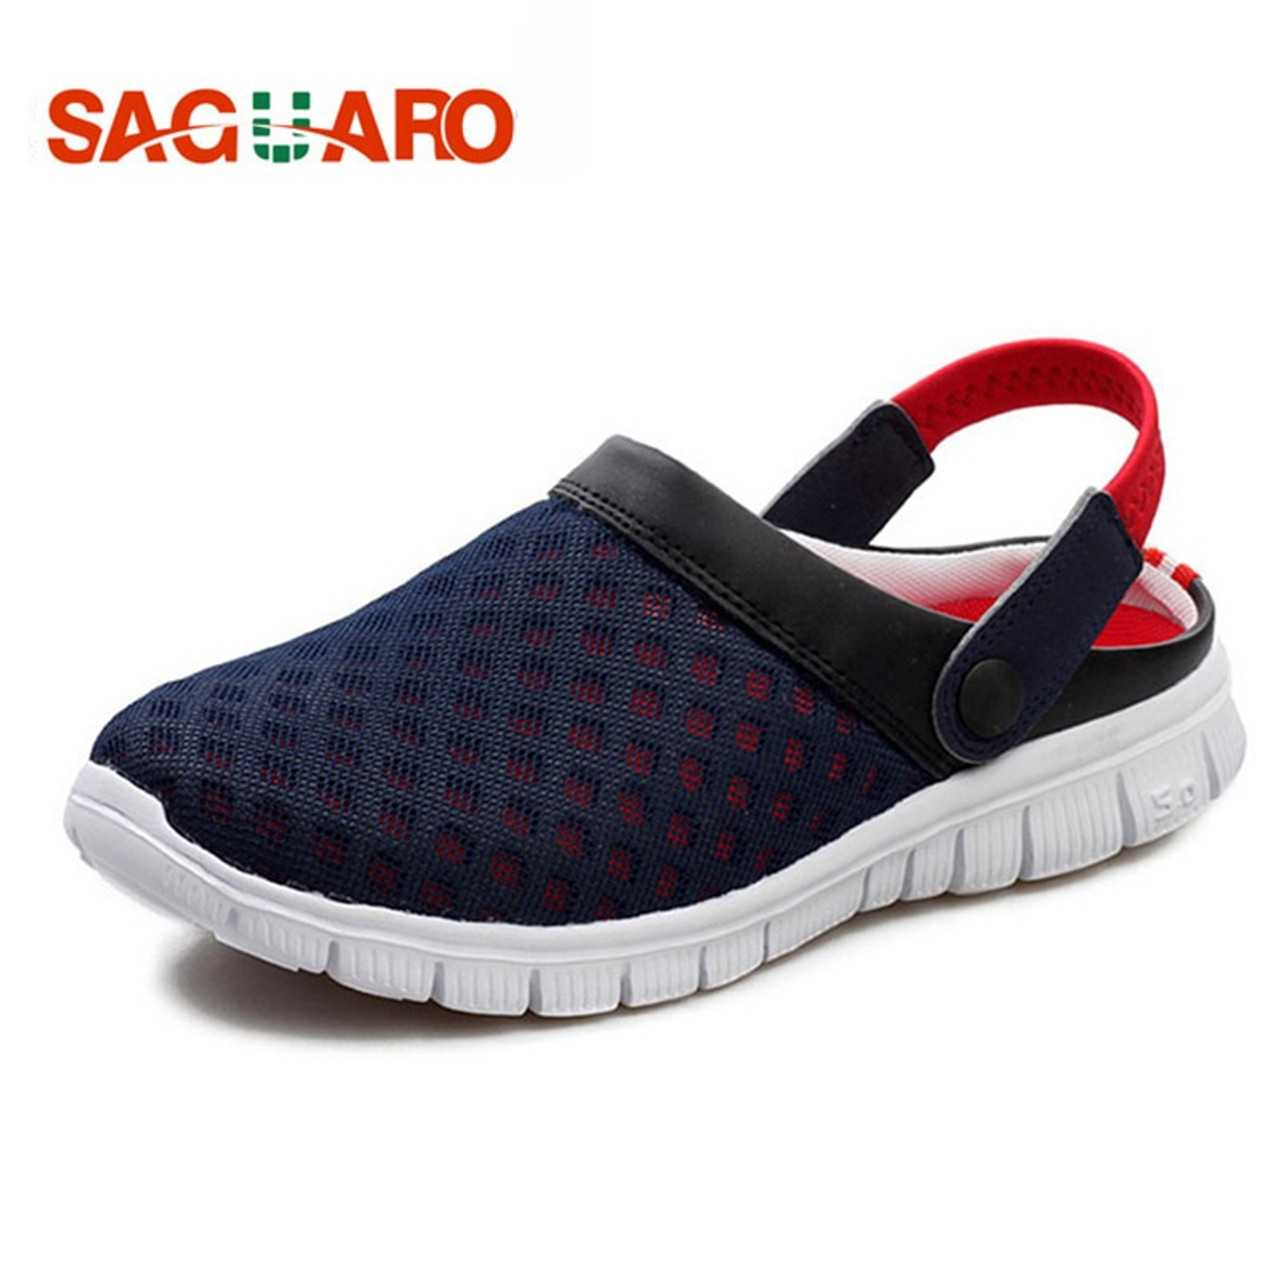 721c8e5bb1321 SAGUARO Summer Men Slippers Shoes 2018 Fashion Mesh Slippers Unisex Beach  Sandals Casual Flat Slip On ...